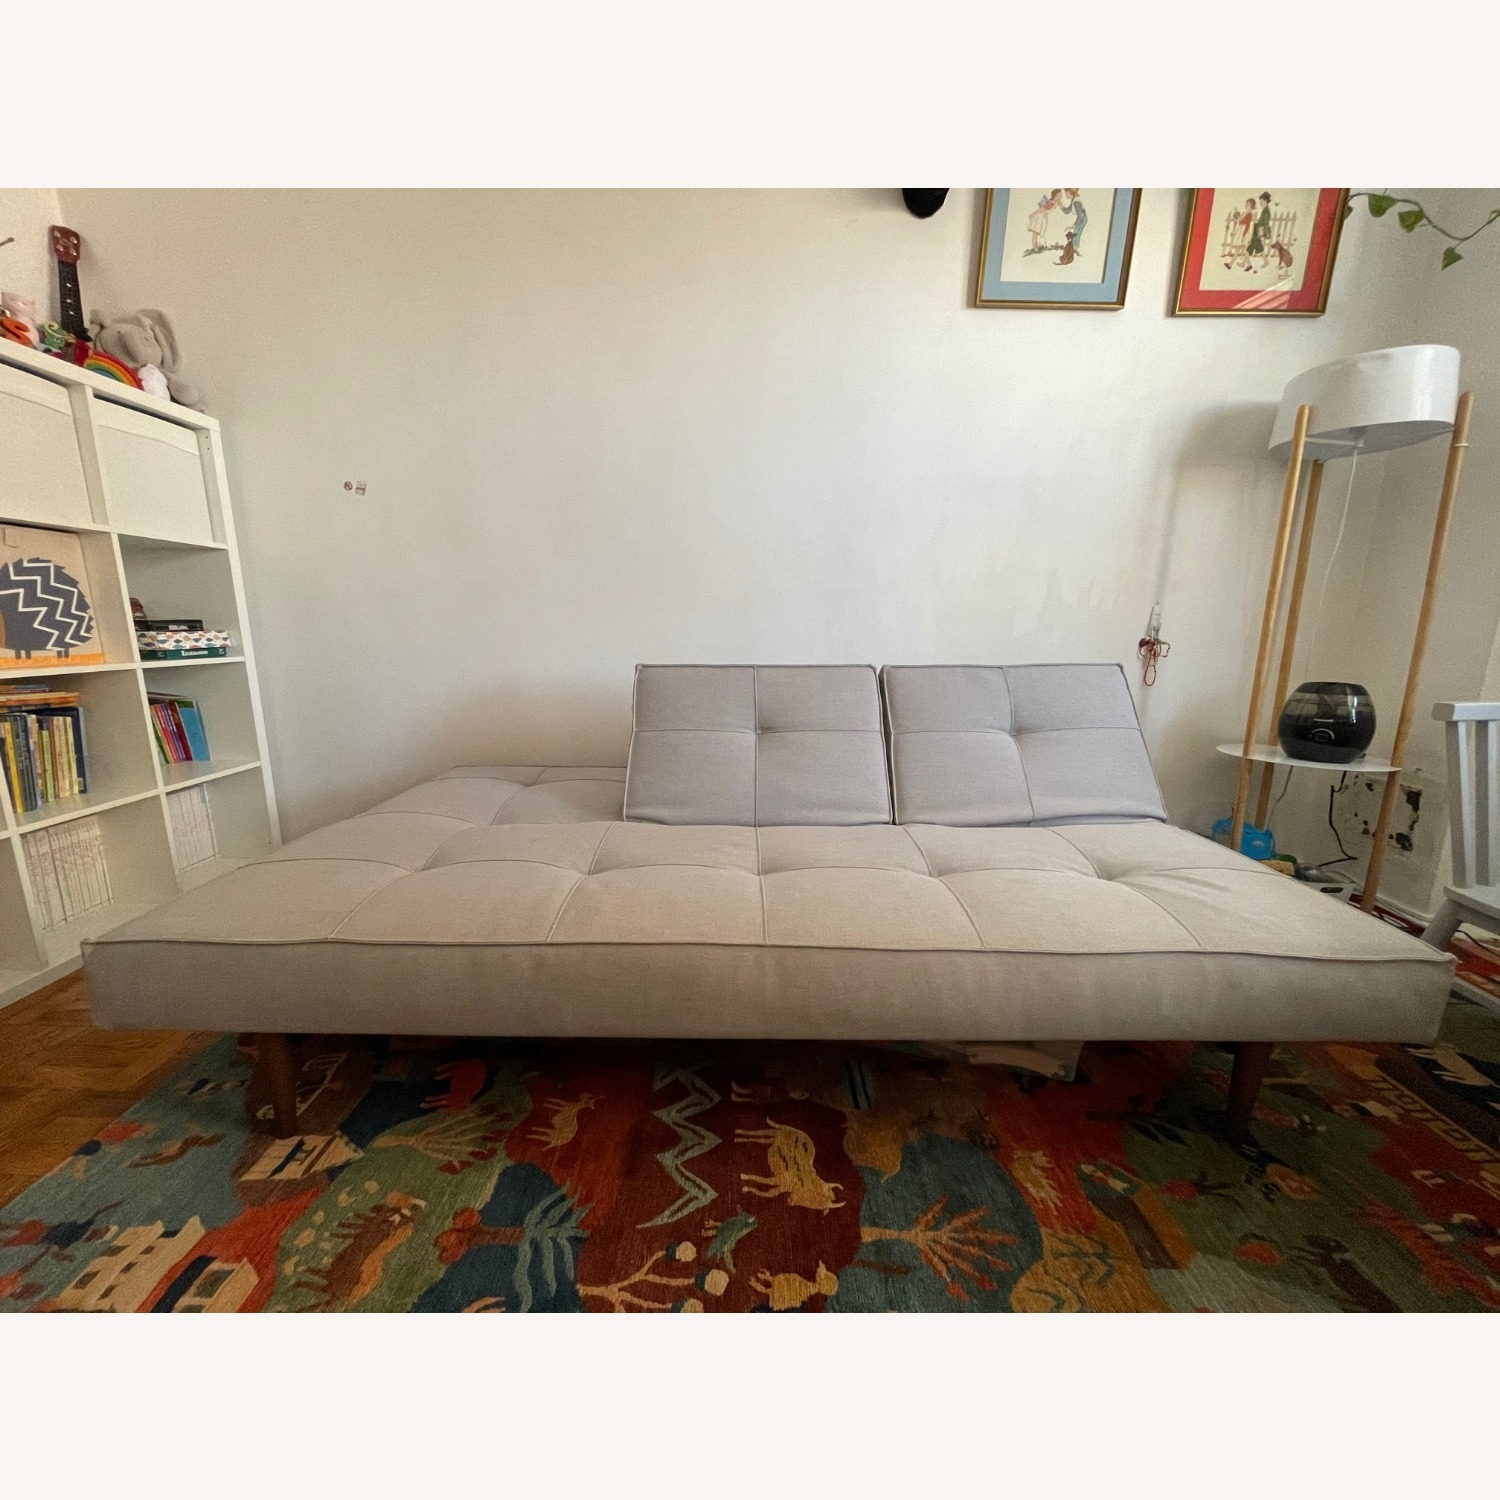 Room and Board Modern Fold Out Bed- Sofa - image-1